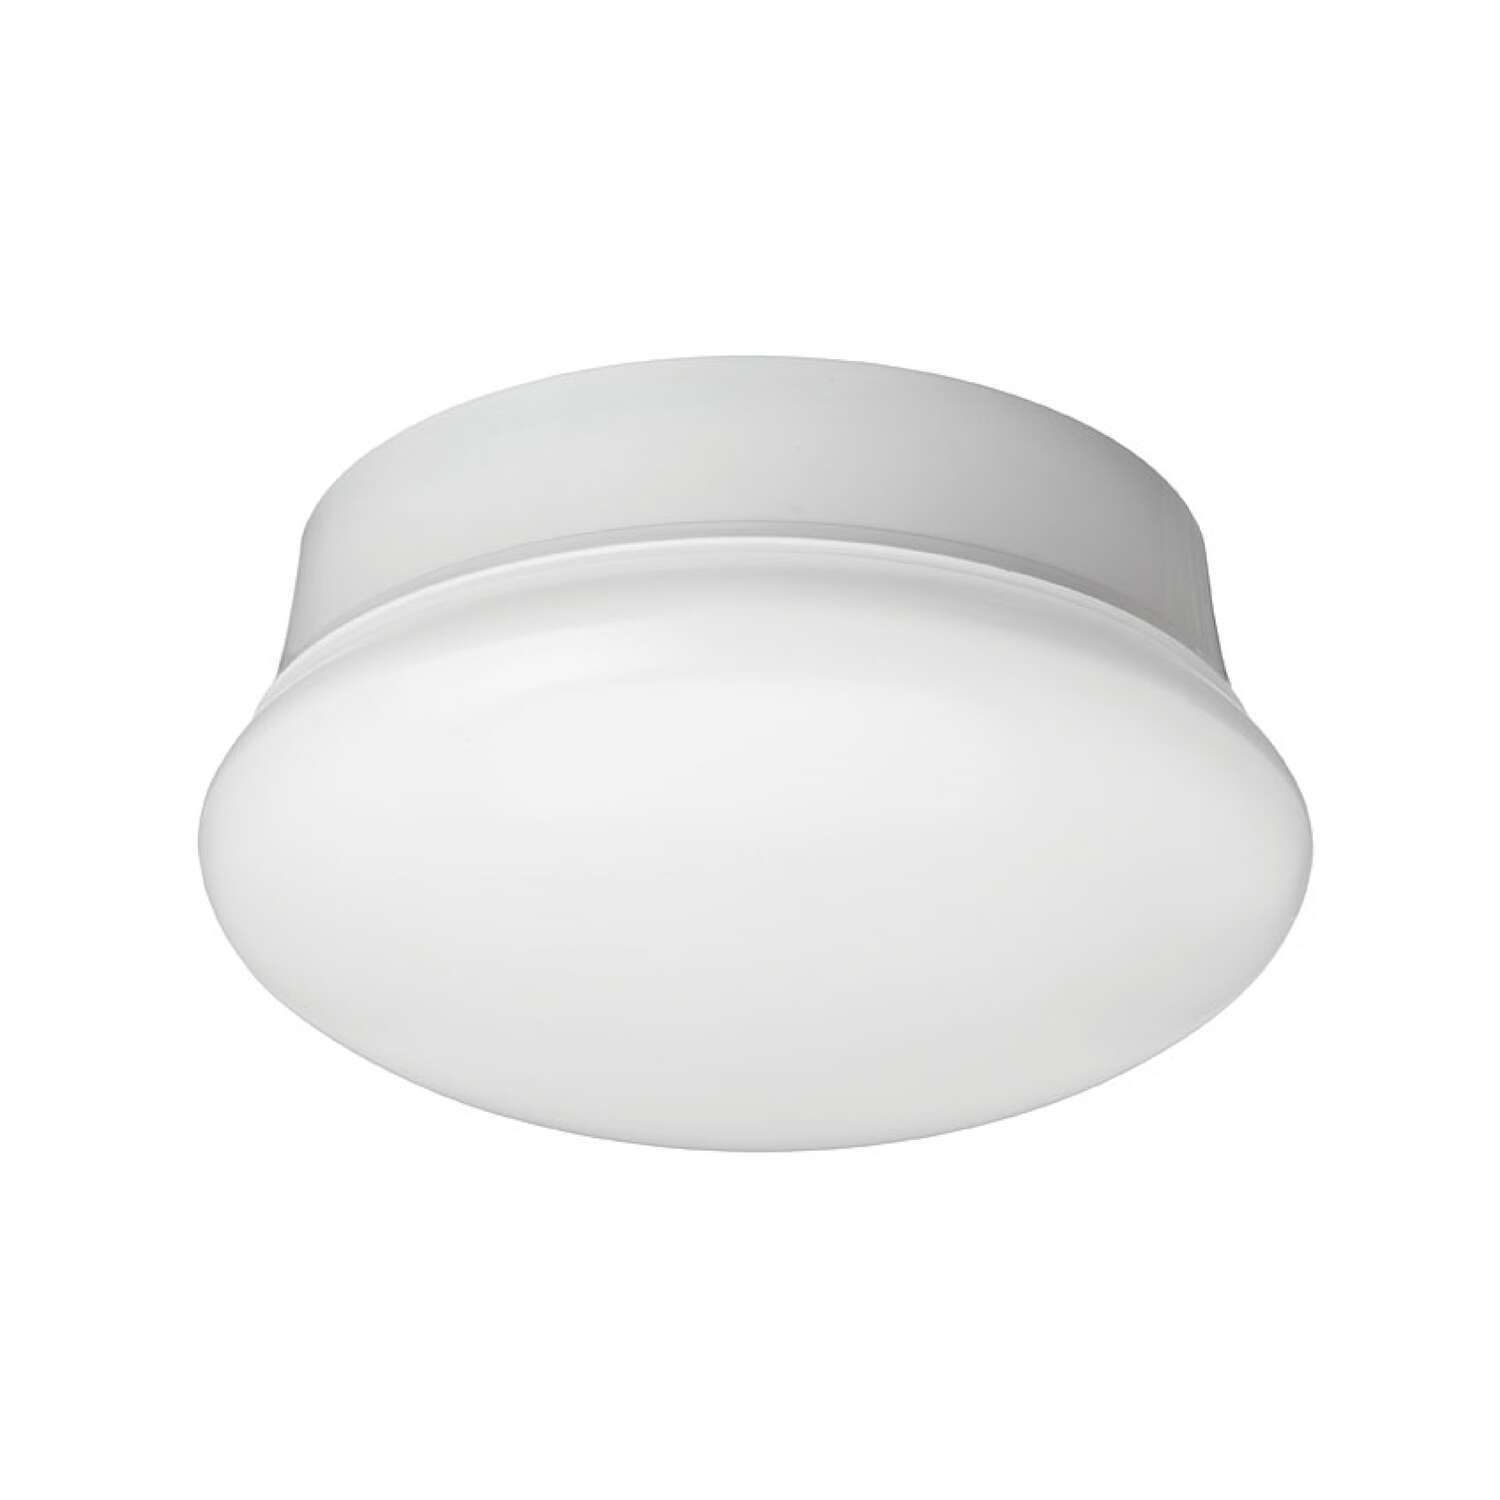 ETi Color Preference Spin Light 3.5 in. H x 7 in. W x 7 in. L White LED Ceiling Spin Light